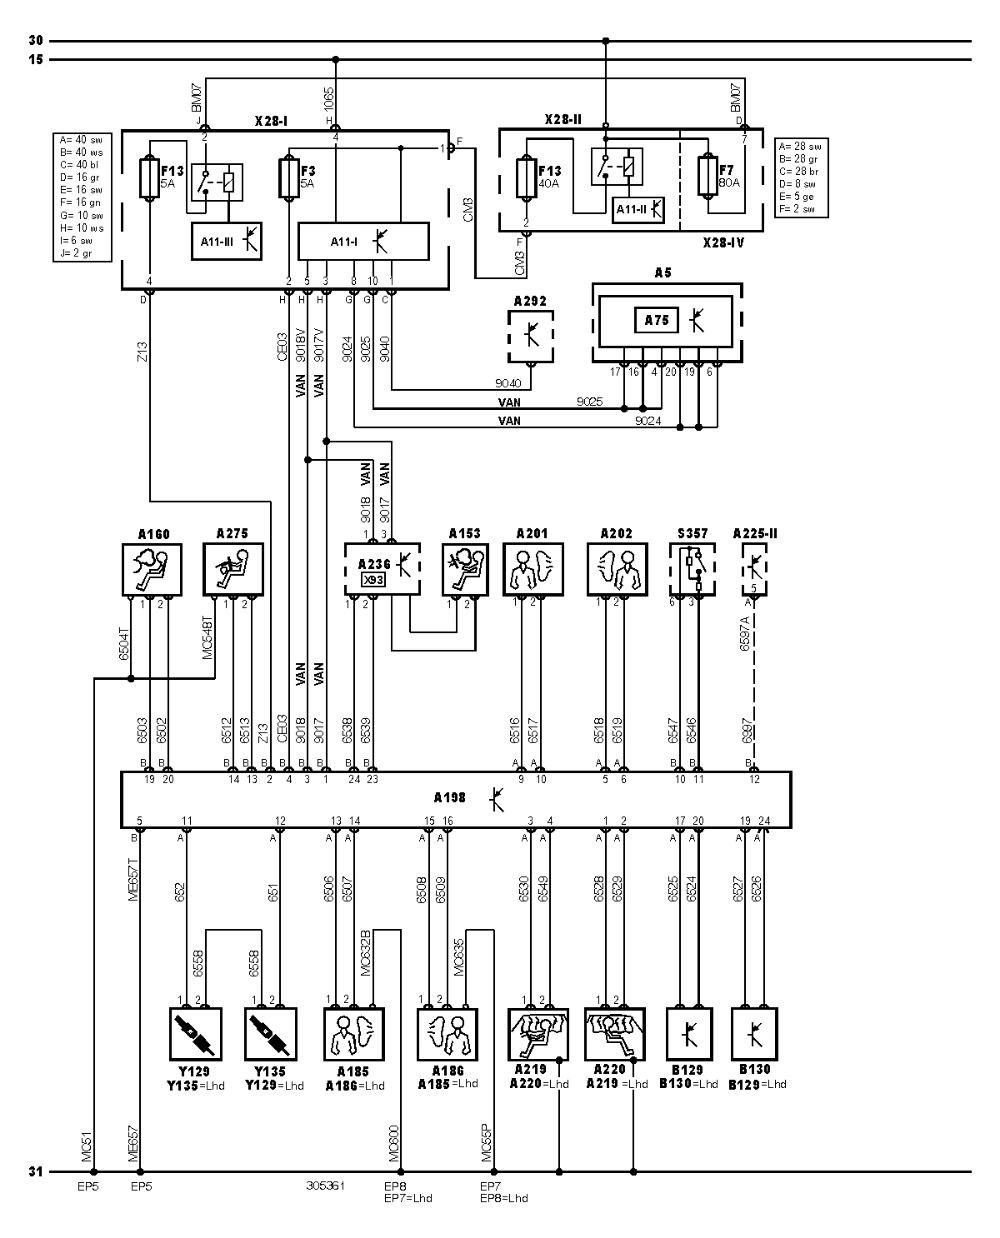 Autodata Wiring Diagram - Wiring Diagrams Databaselaccolade-lescours.fr